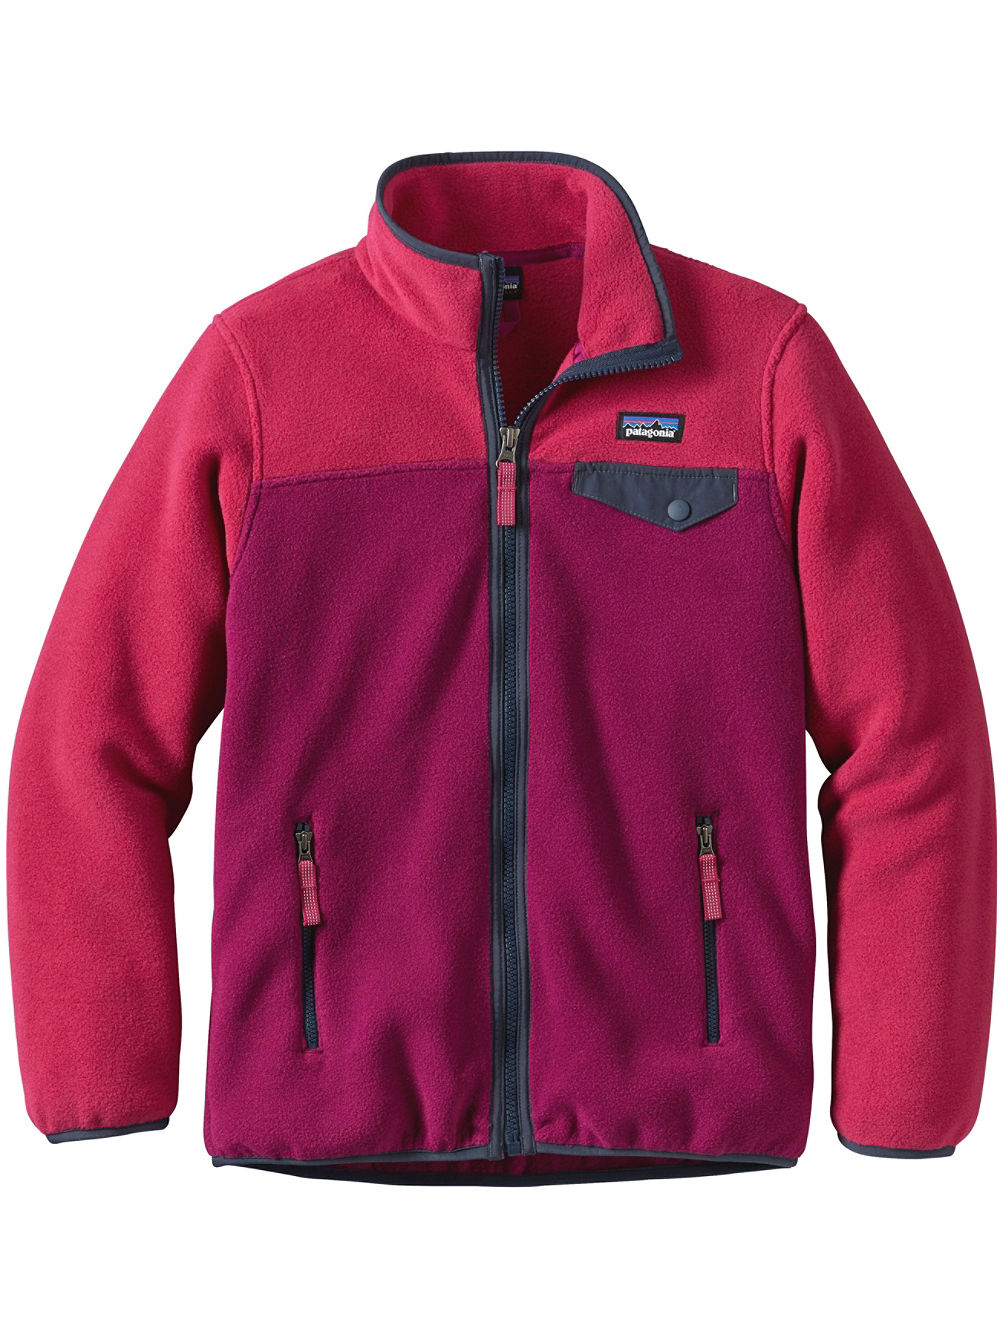 LW Synchilla Snap-T Fleece Jacket Girls